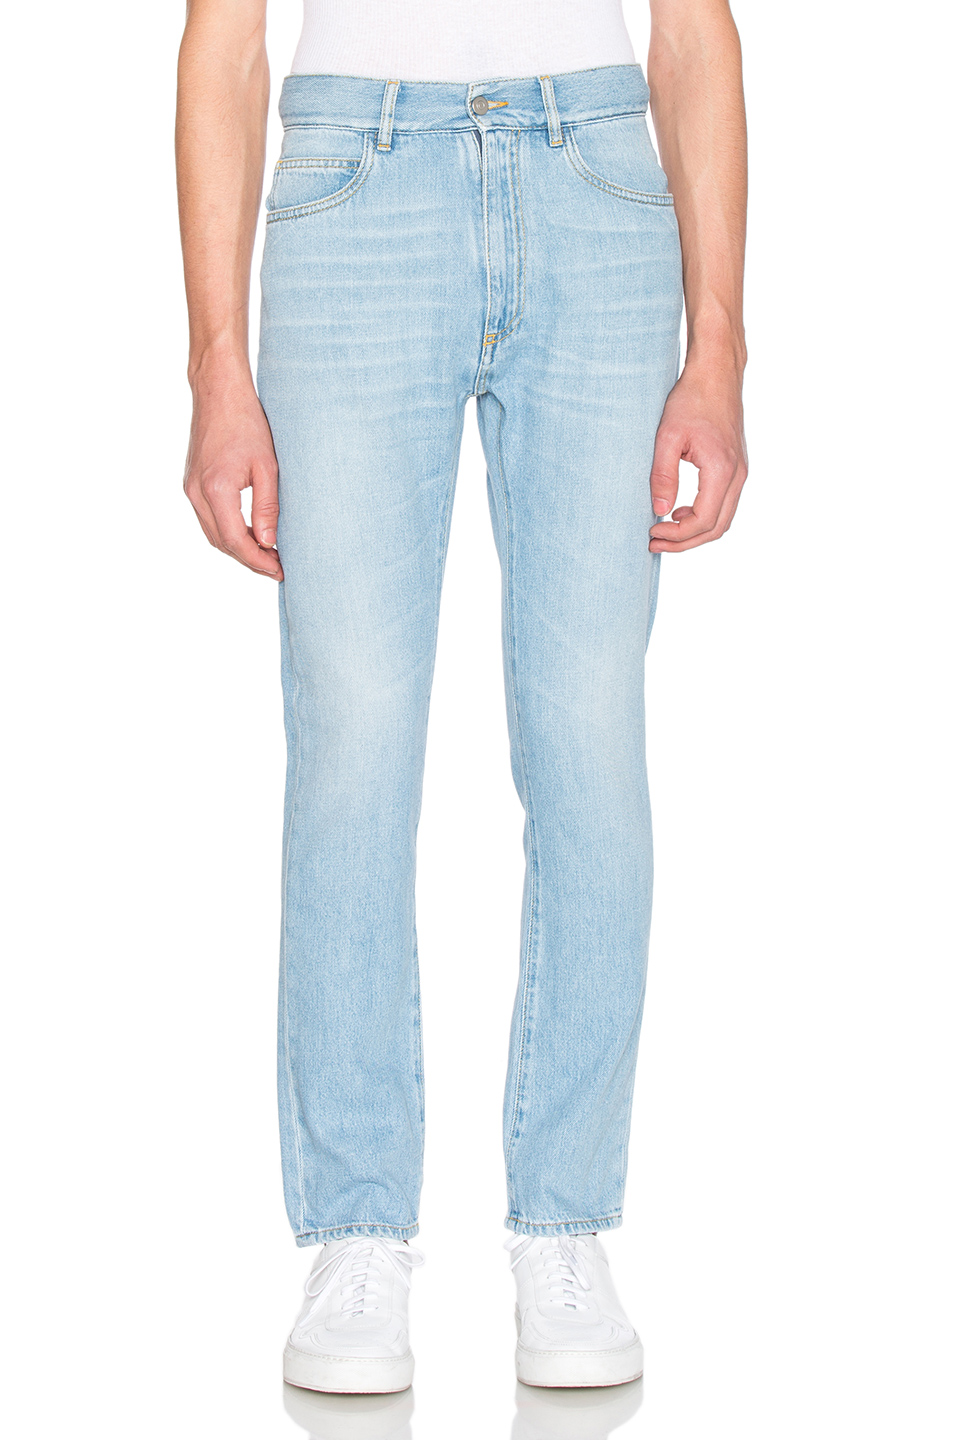 Maison Margiela Vintage Extra Cropped Jeans in Blue